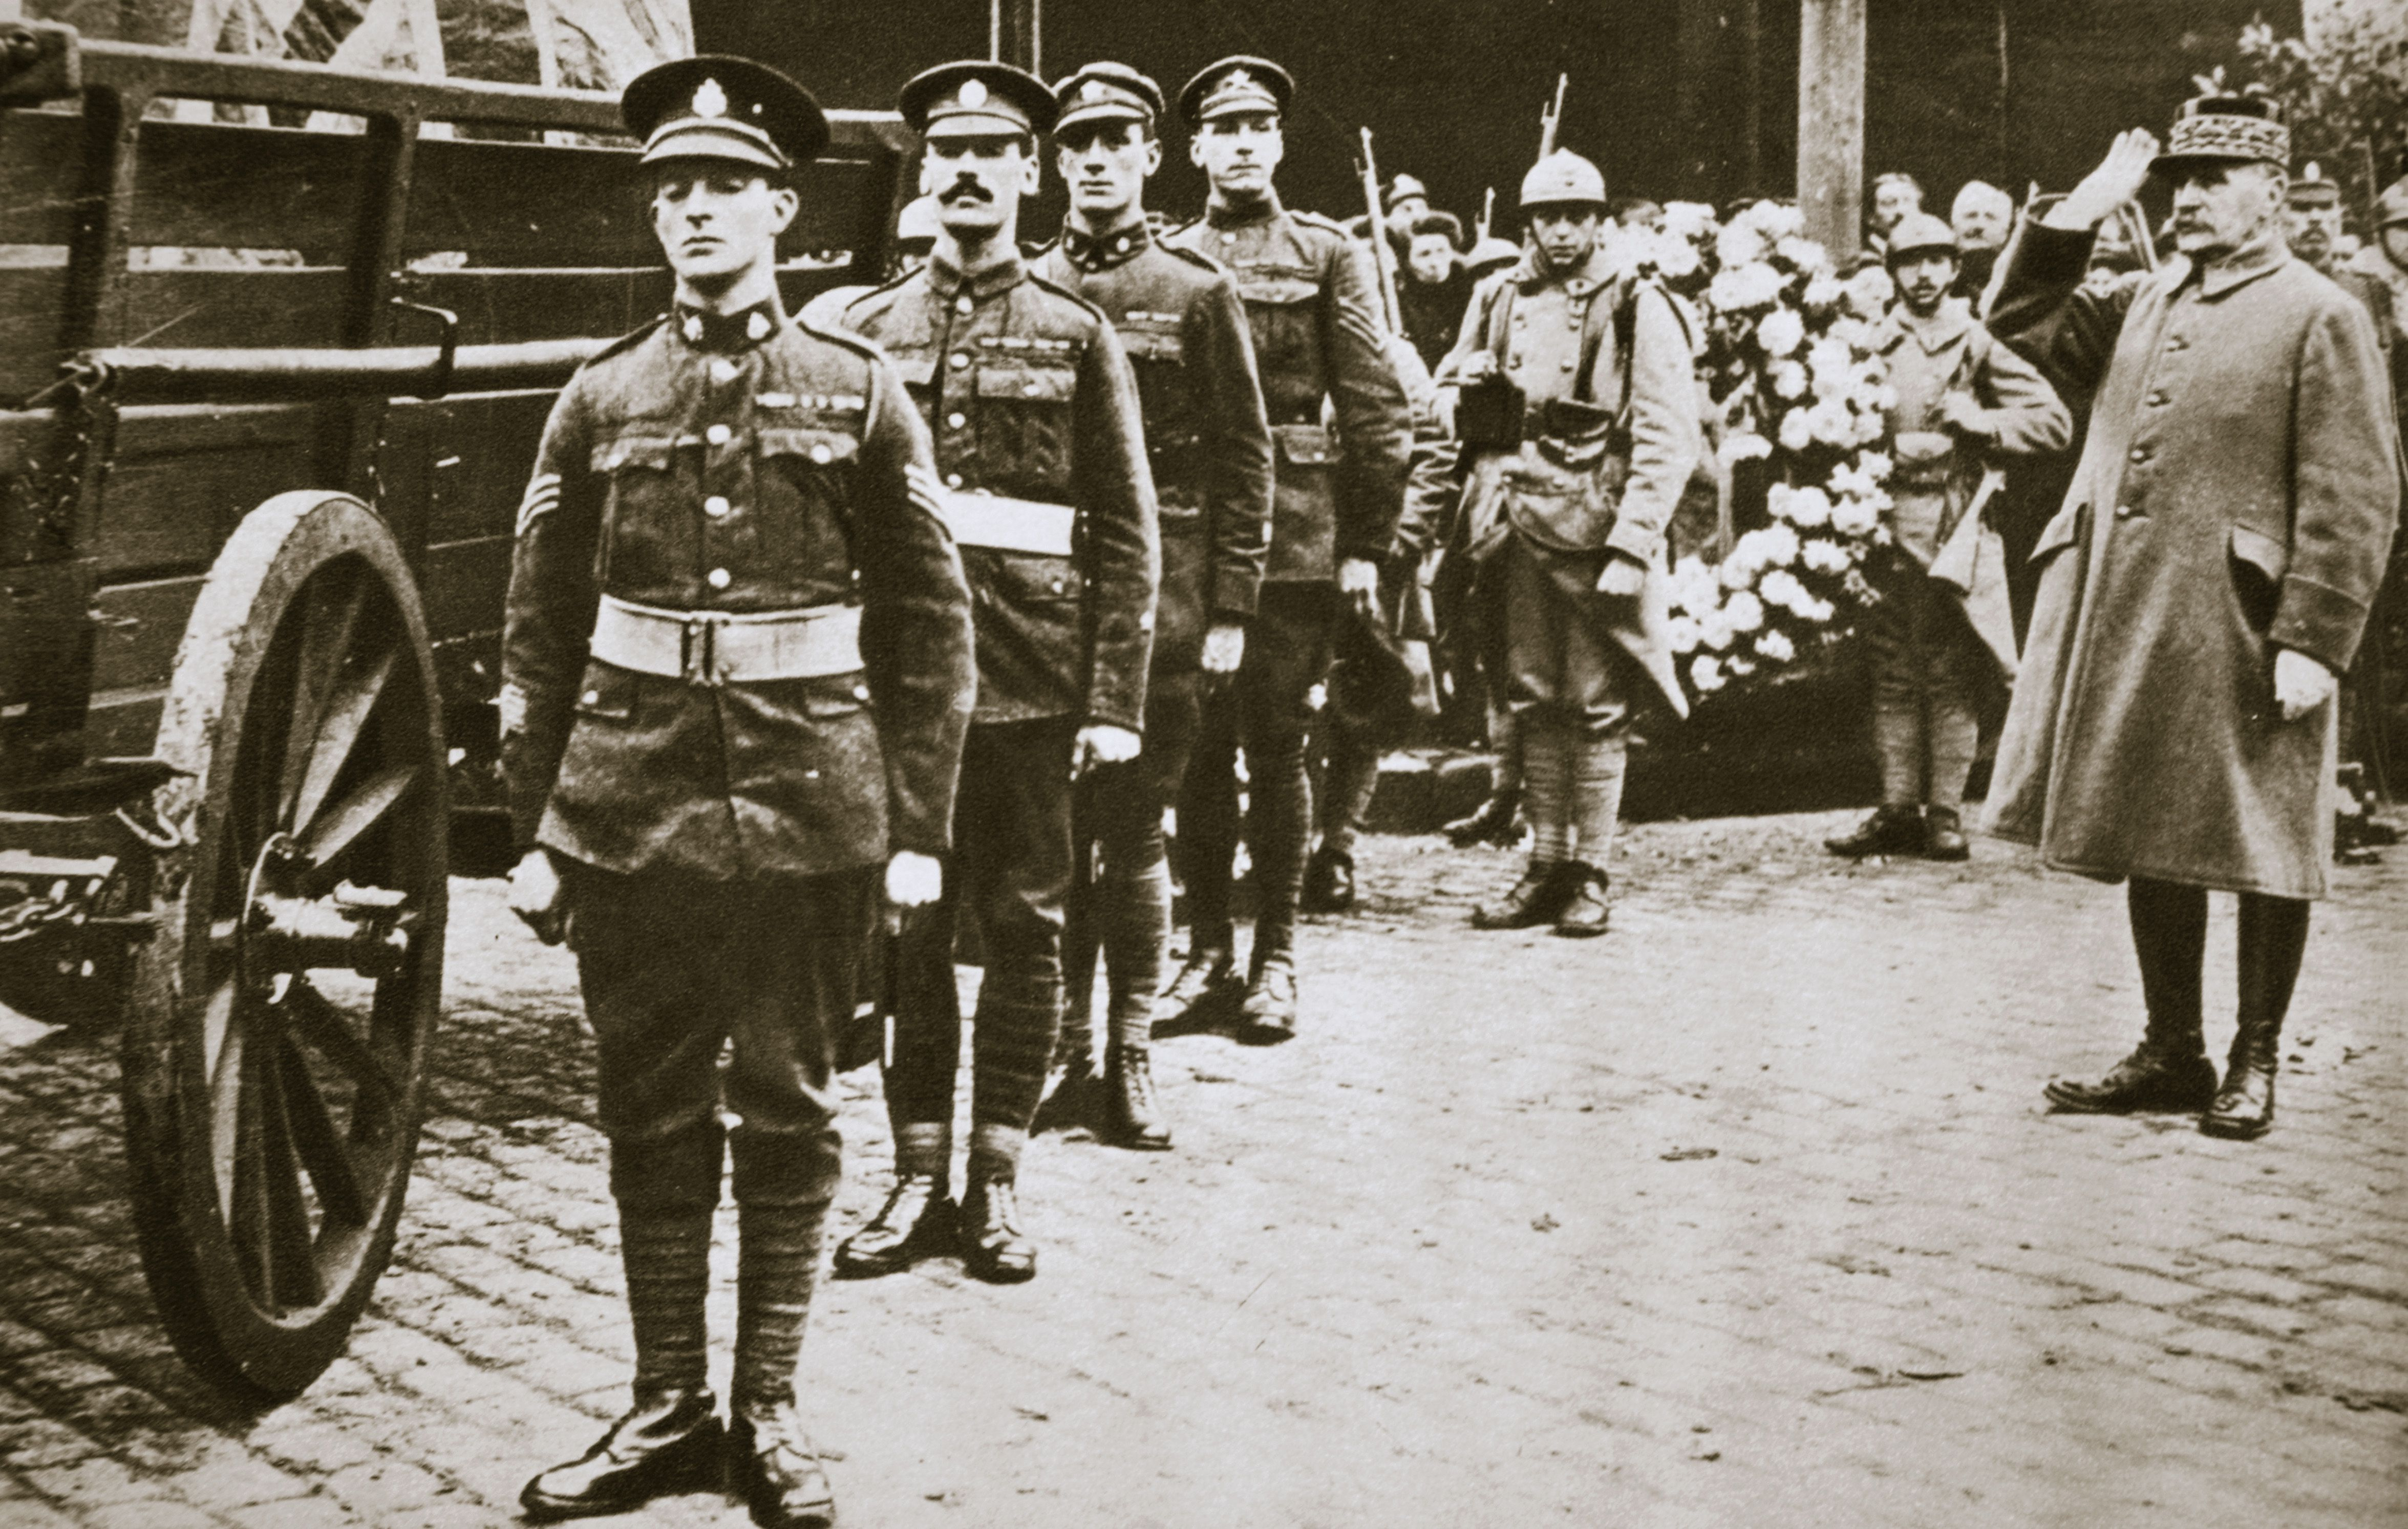 Marshal Foch French General Saluting The British Unknown Soldier circa 1918